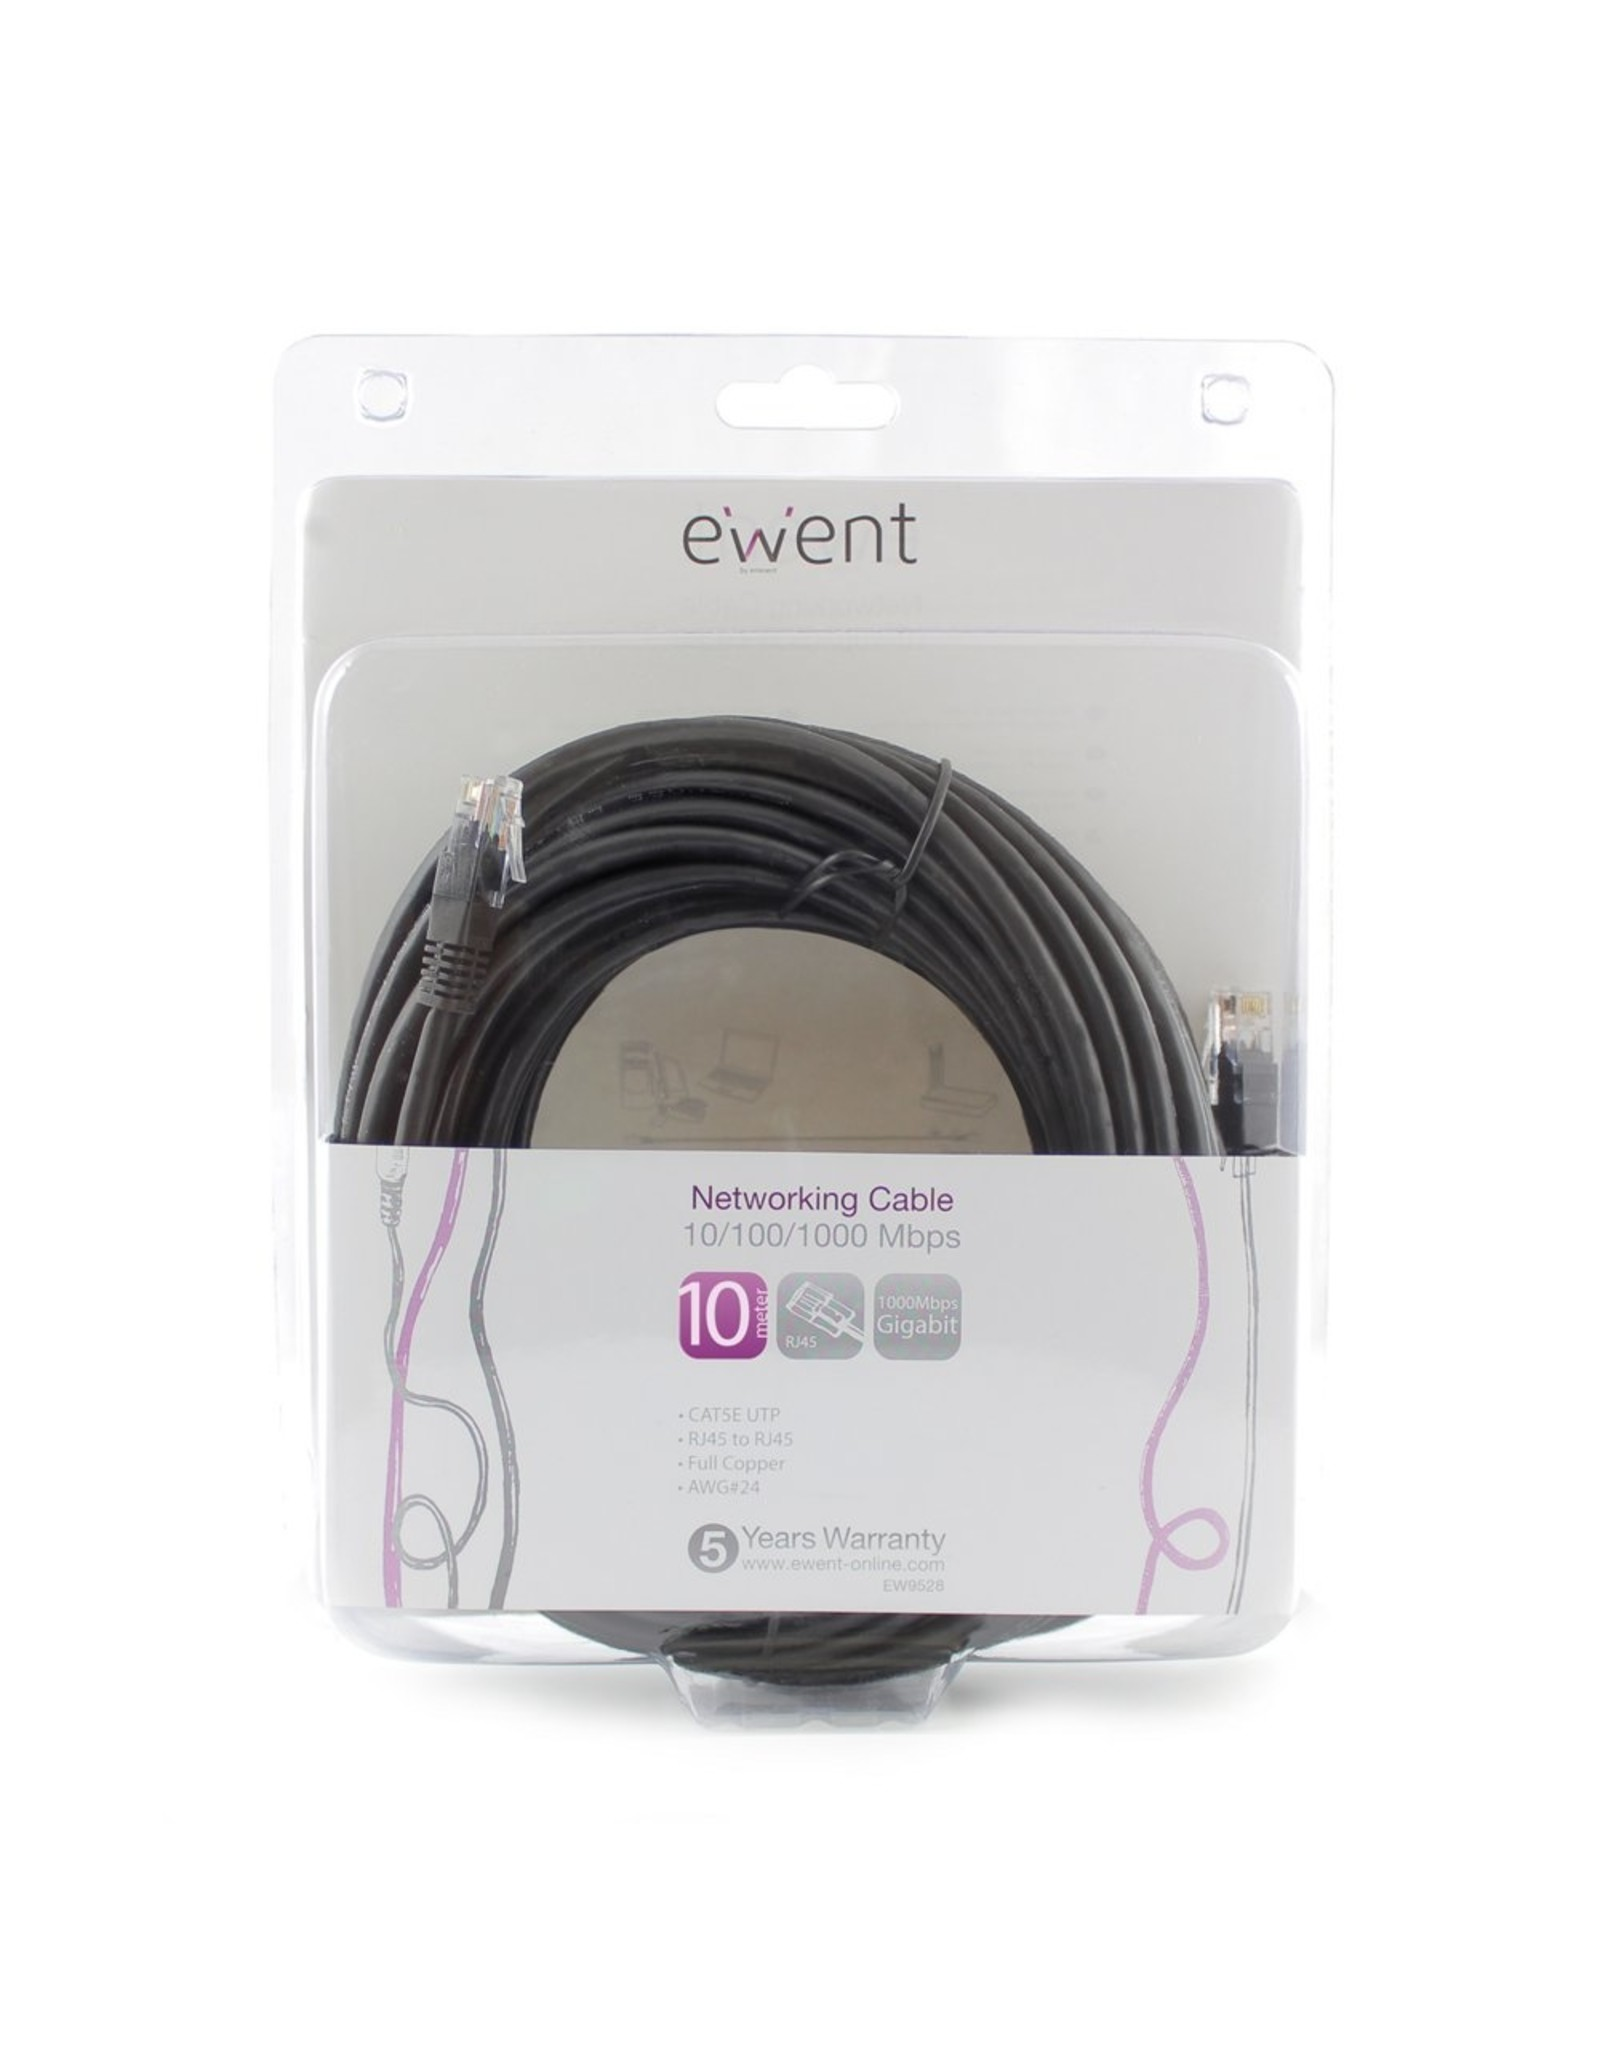 Ewent Networking Cable 10 Meter Black